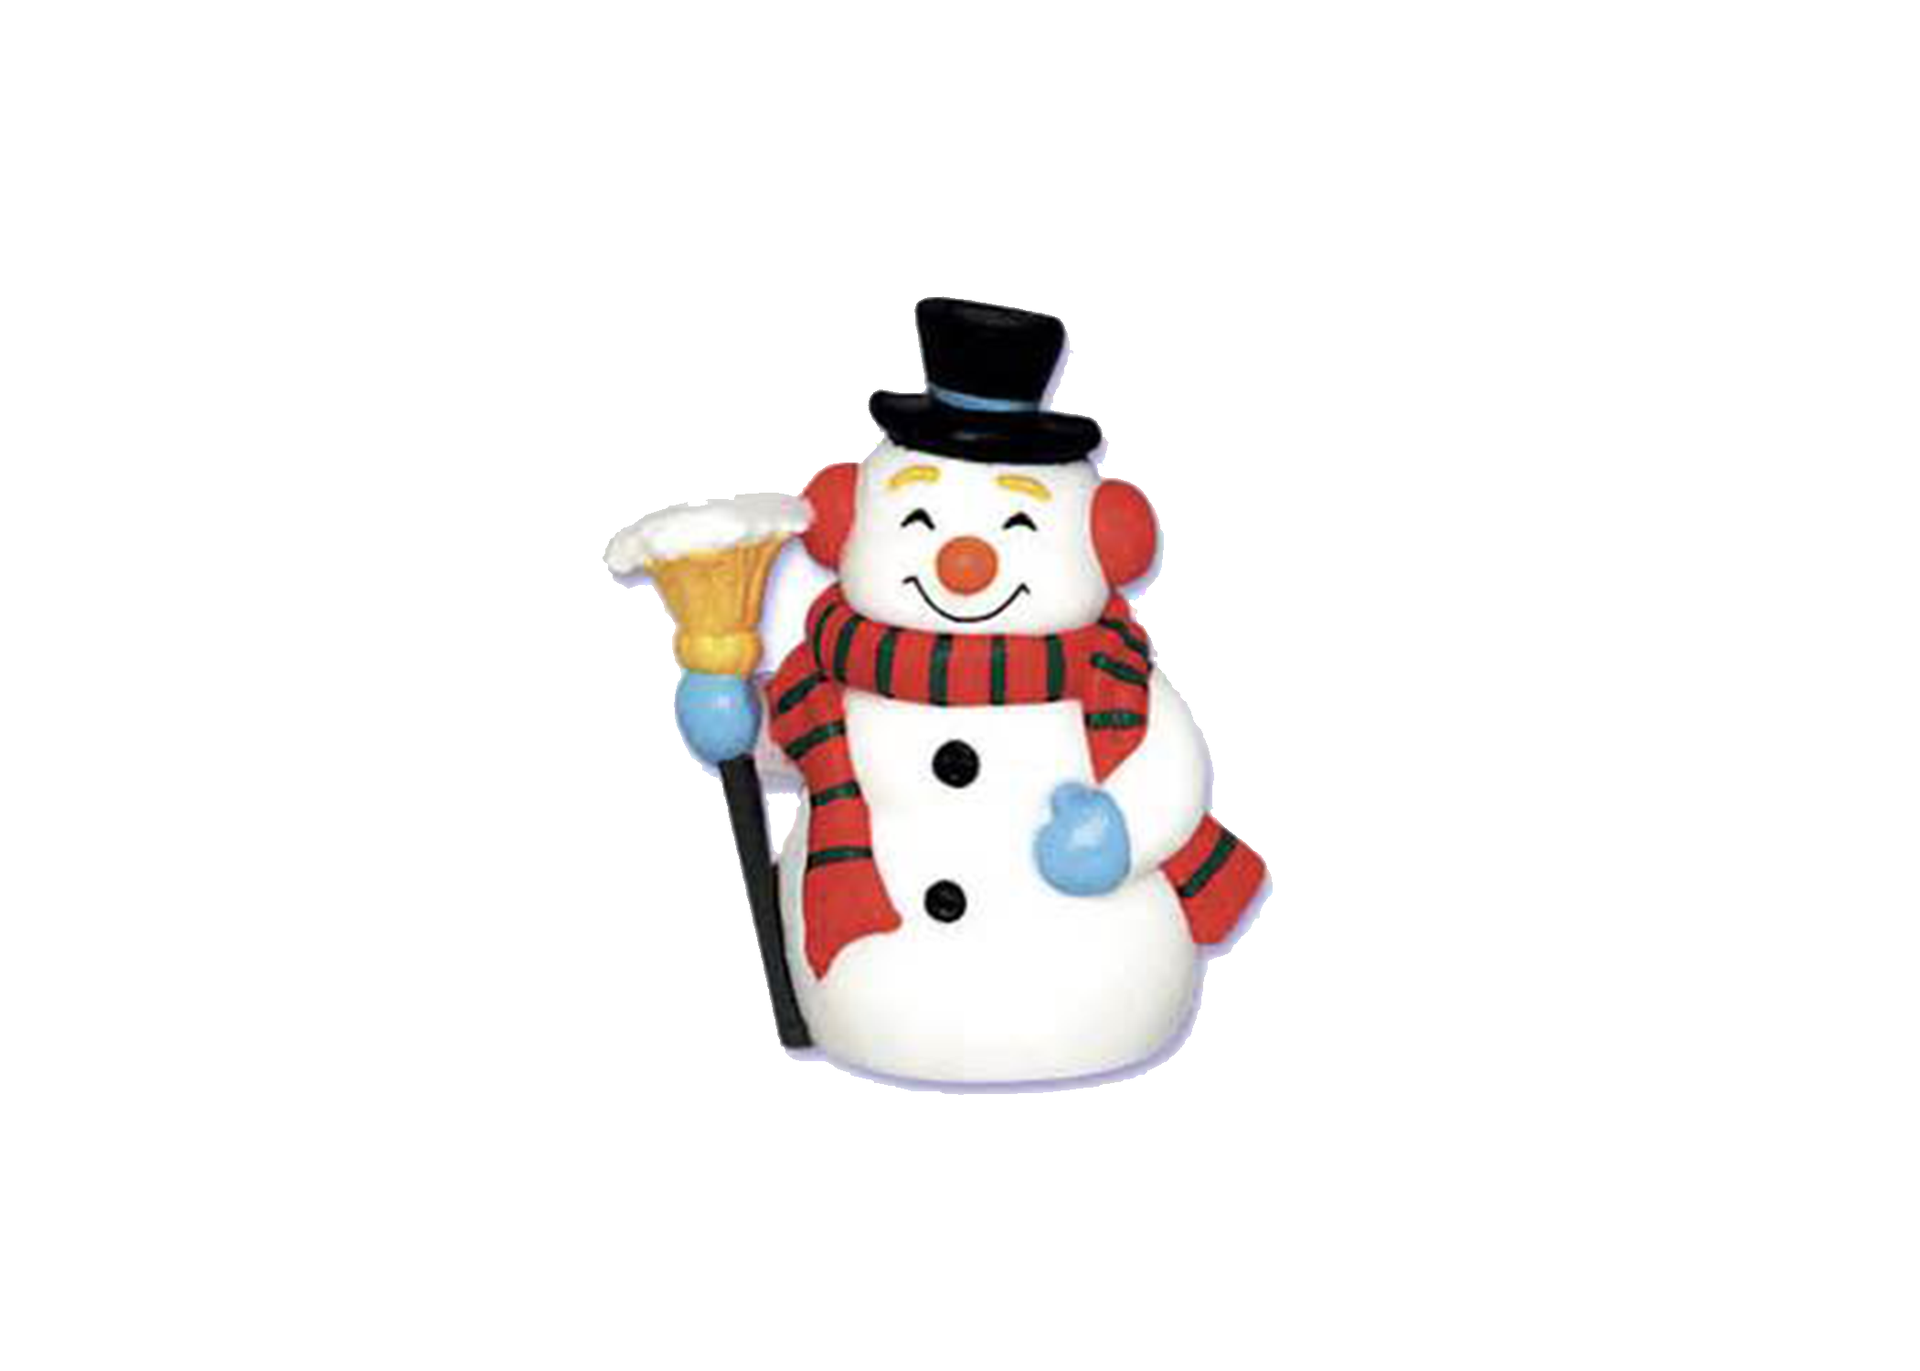 Smiling snowman with a top hat and a broom